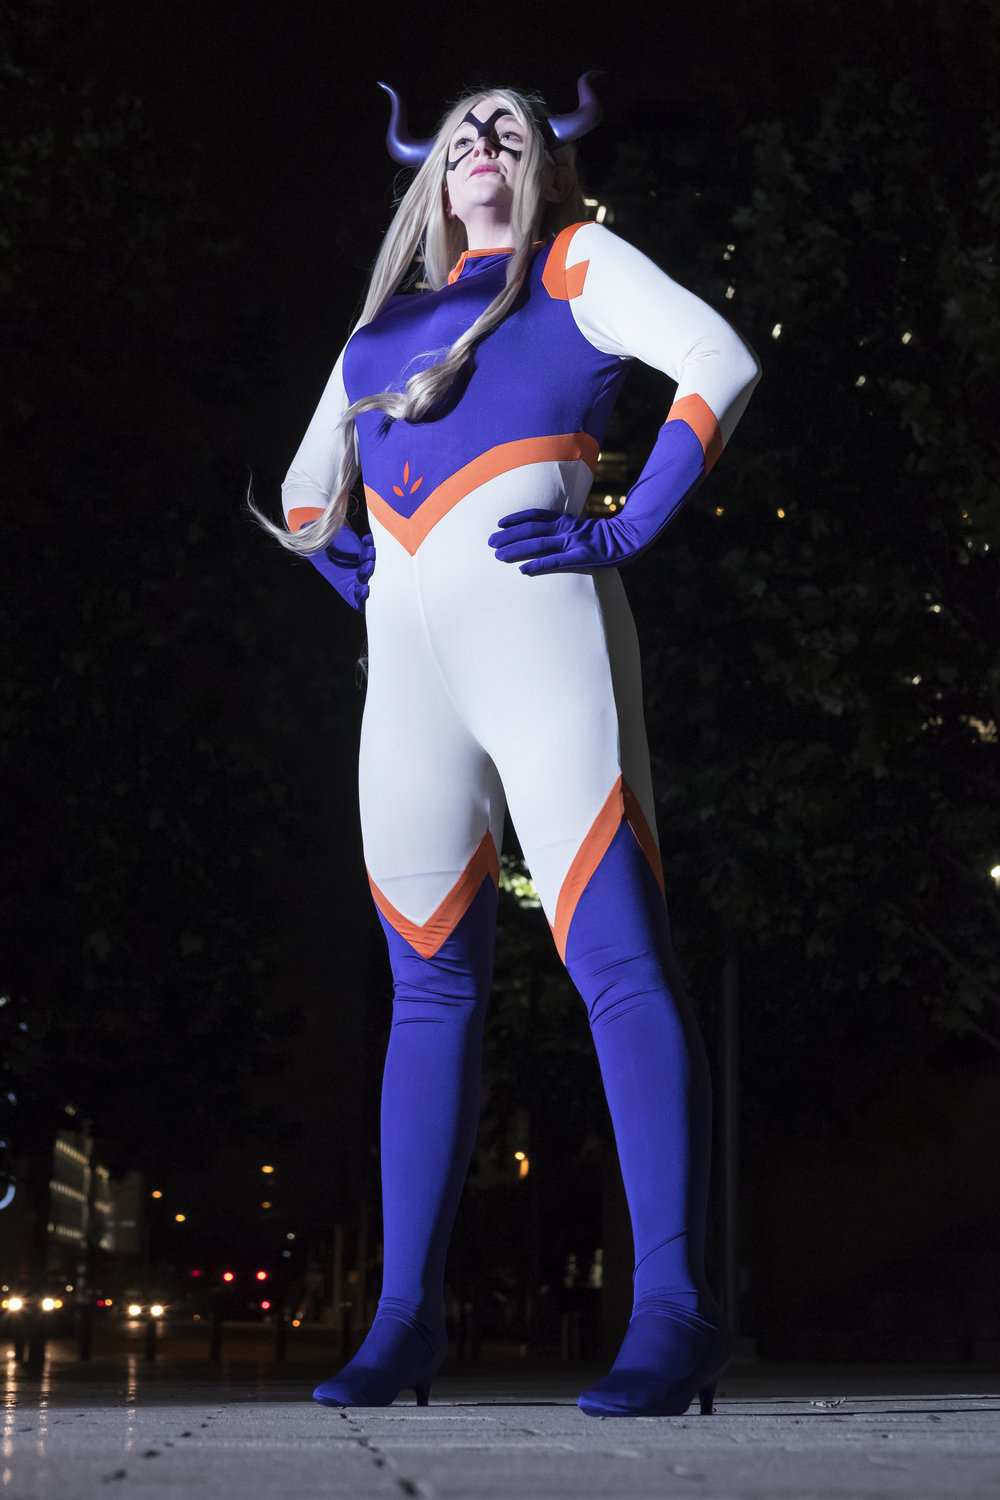 Allybelle Cosplay in Mount Lady cosplay in downtown Austin